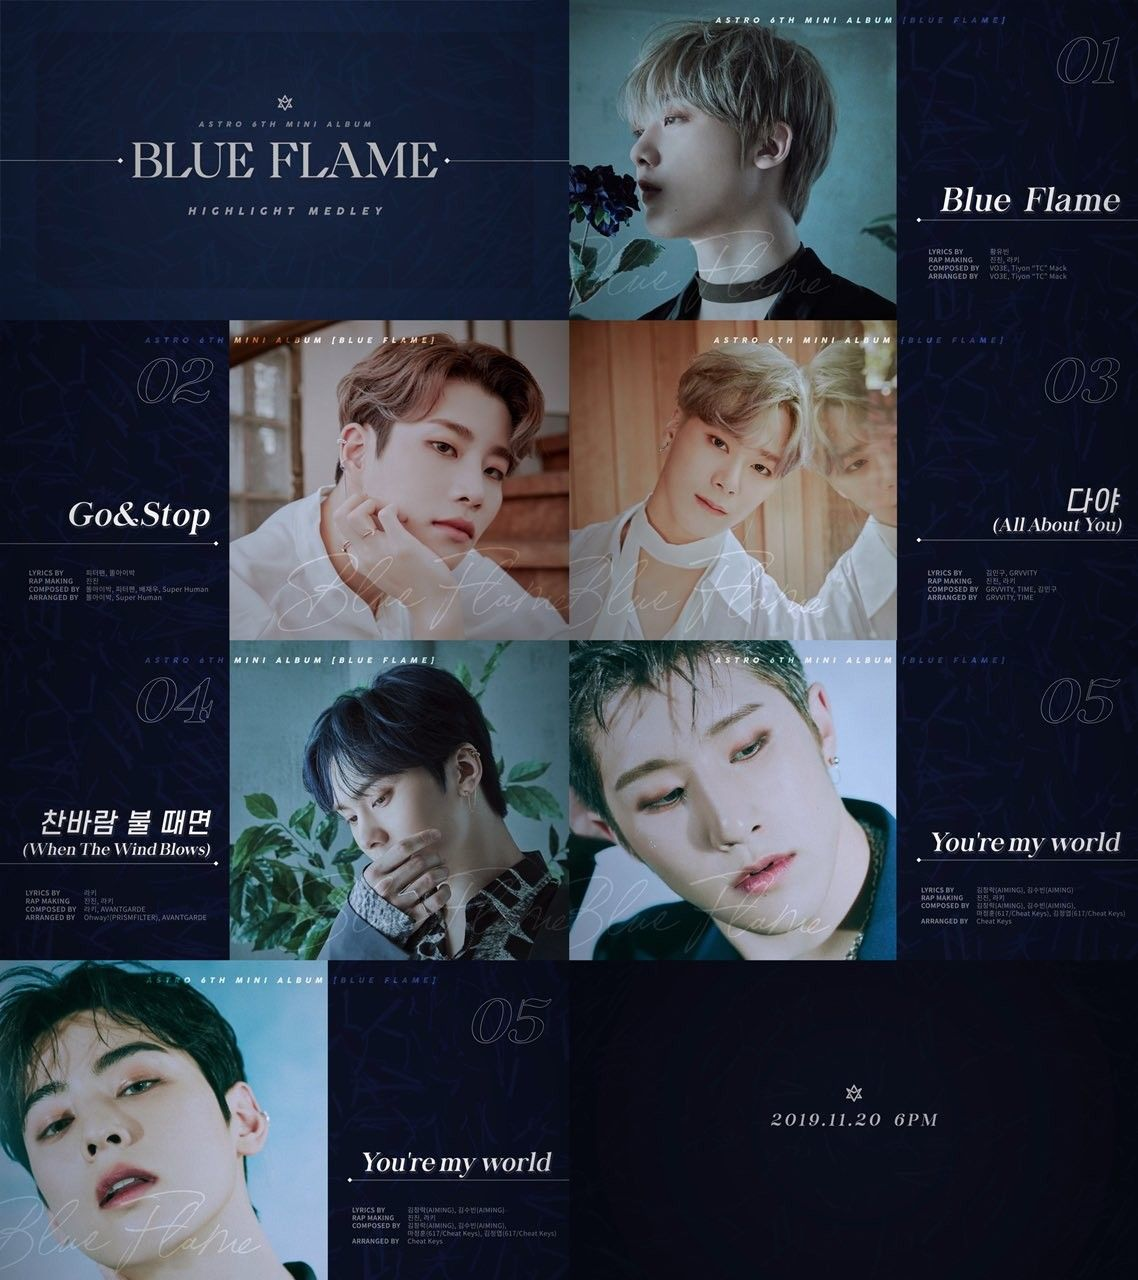 Blue Flames Image By Aroha Inspirit On ASTRO ☆